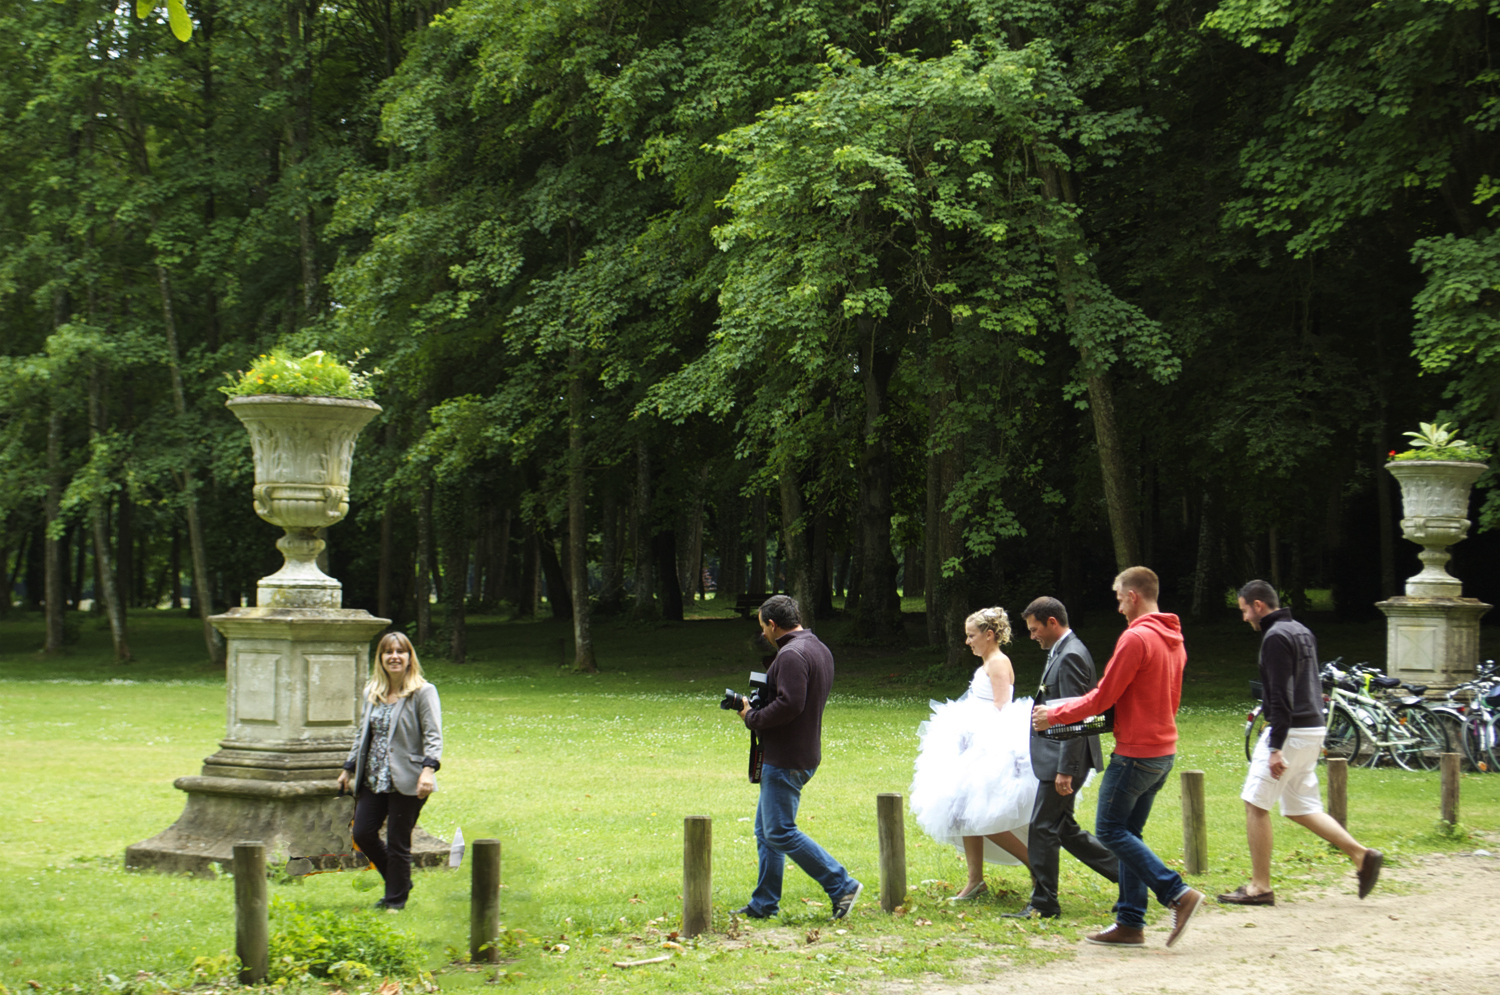 The château grounds offer attractive photographic opportunities